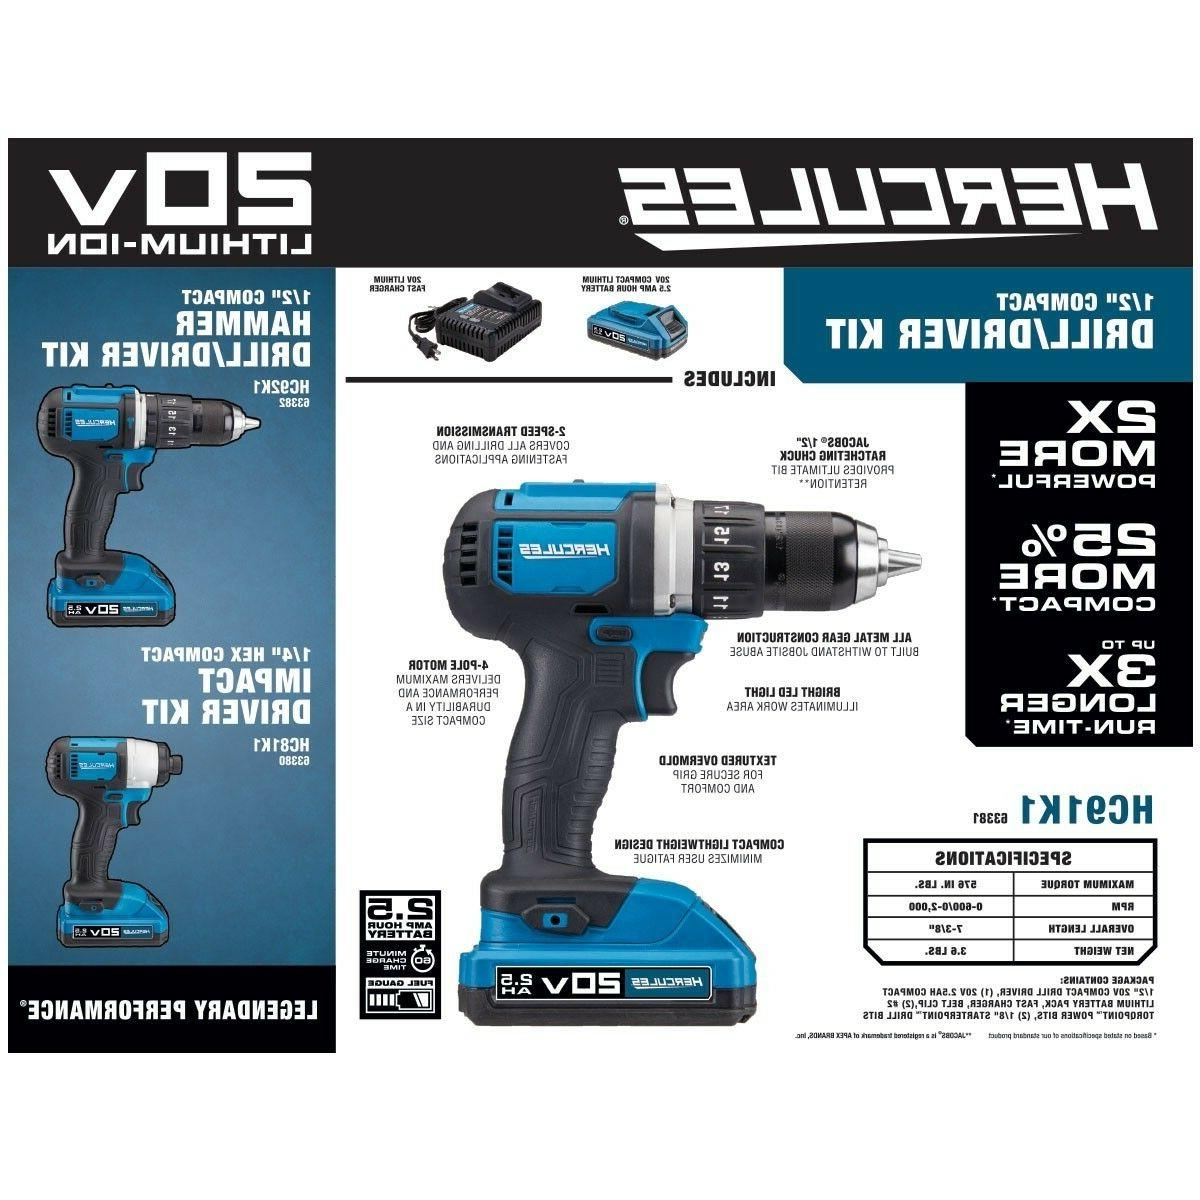 Hercules Cordless 1/2 In. Drill/Driver Kit